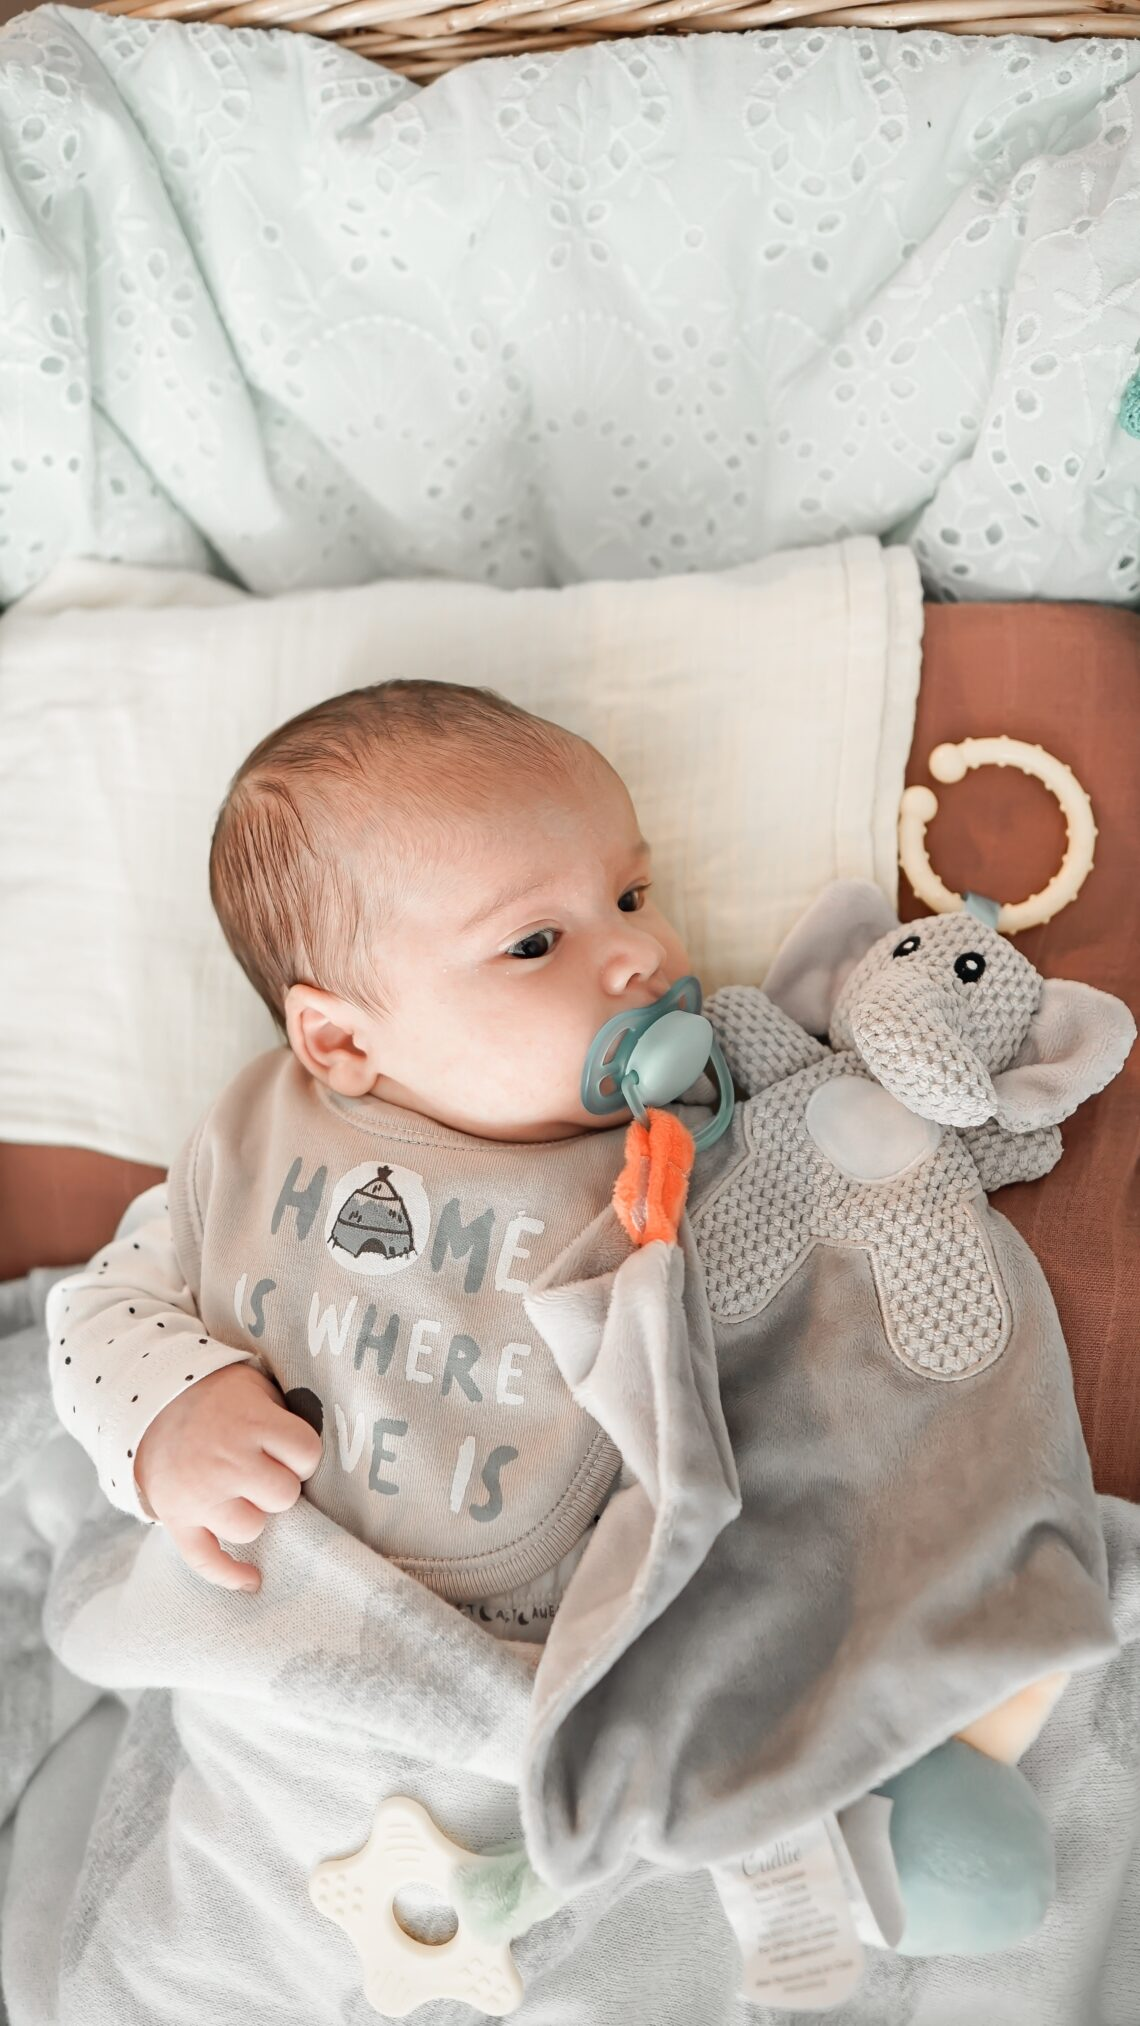 liknologio-chewing-toy-baby